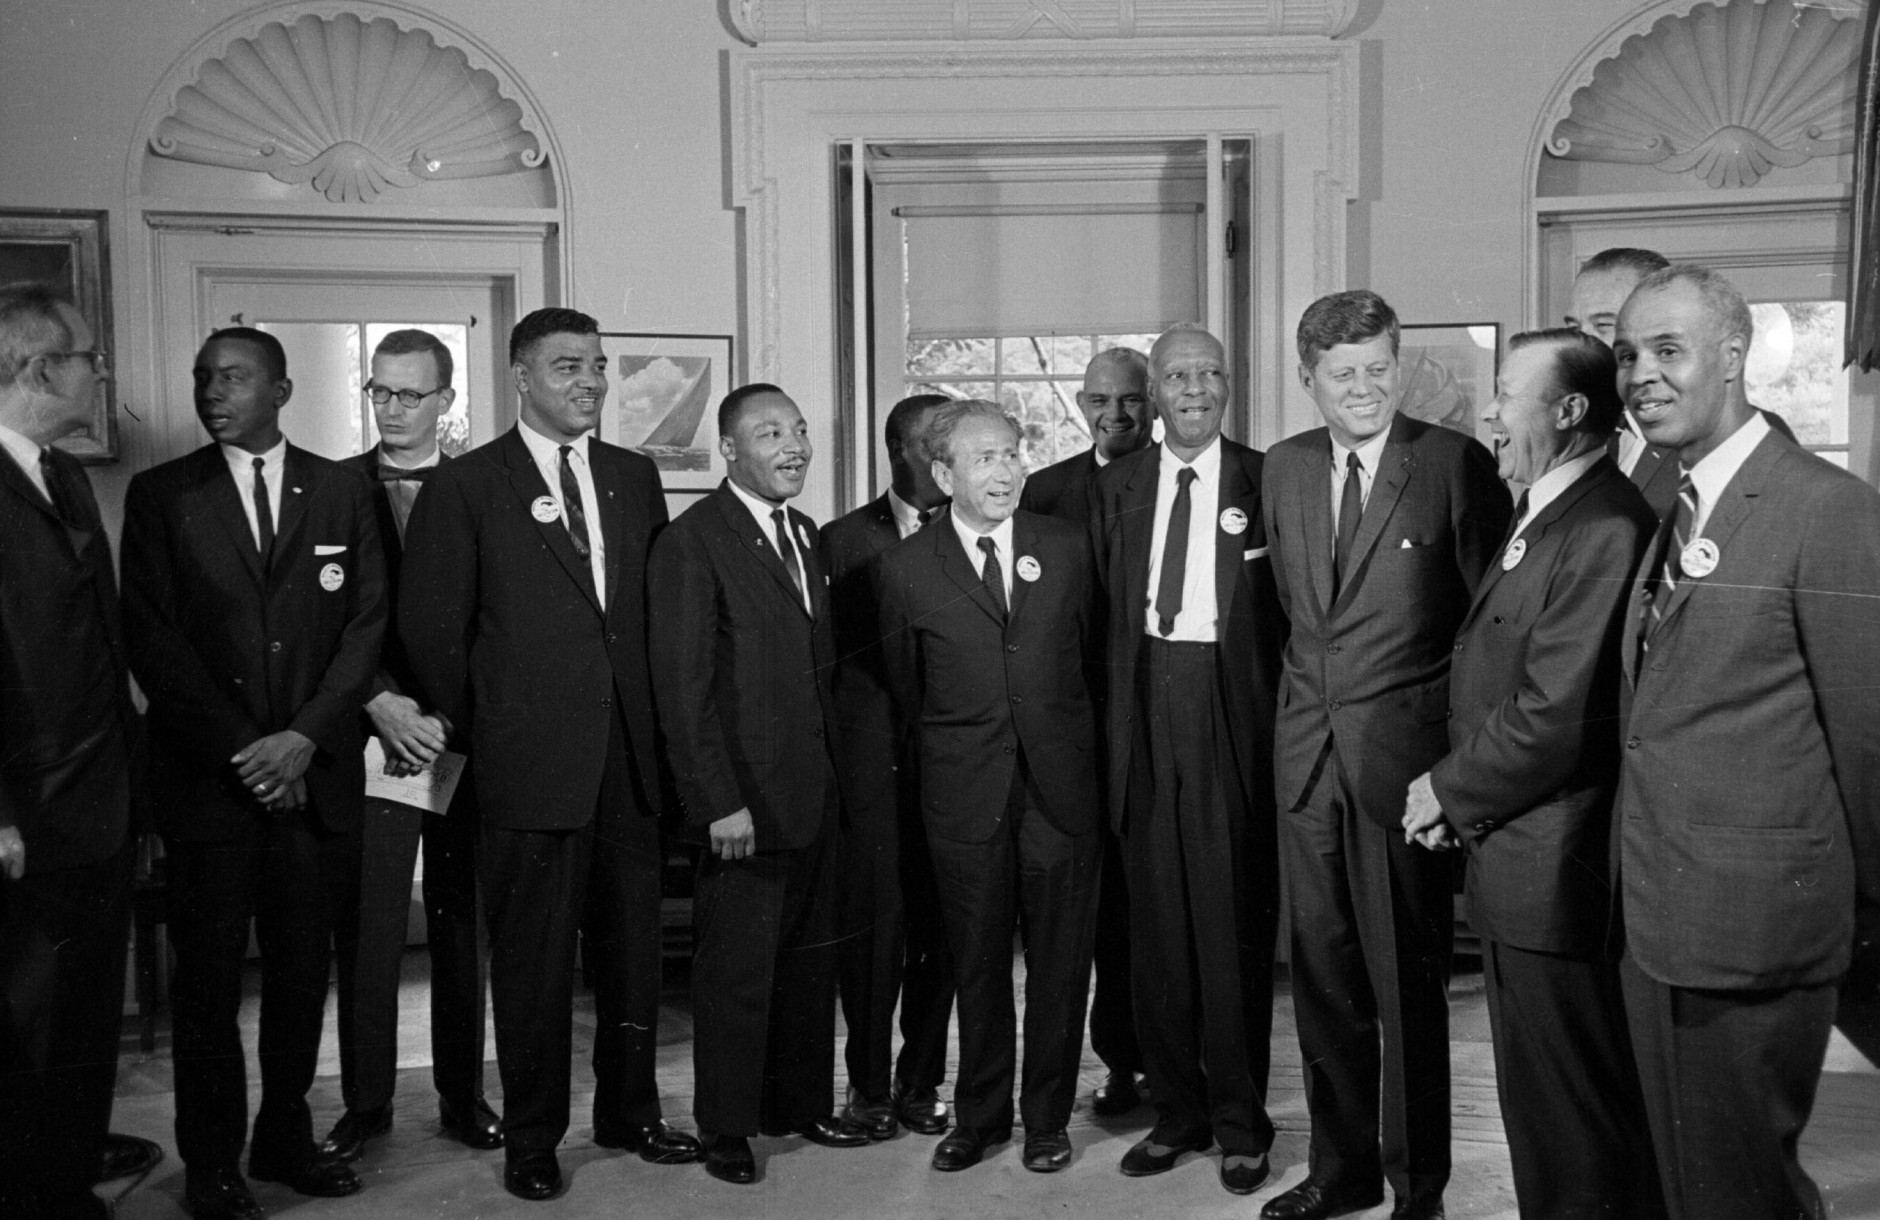 President Kennedy poses August 28, 1963 at the White House with a group of leaders of the March on Washington.  From left, Whitney Young, National Urban League; Dr. Martin Luther King, Christian Leadership Conference; John Lewis, Student Non-violent Coordinating Committee;  Rabbi Joachim Prinz, American Jewish Congress; Dr. Eugene P. Donnaly, National Council of Churches; A. Philip Randolph, AFL-CIO vice president; Kennedy; Walter Reuther, Unidted Auto Workers; Vice-President Johnson, rear, and Roy Wilkins, NAACP. (AP Photo)